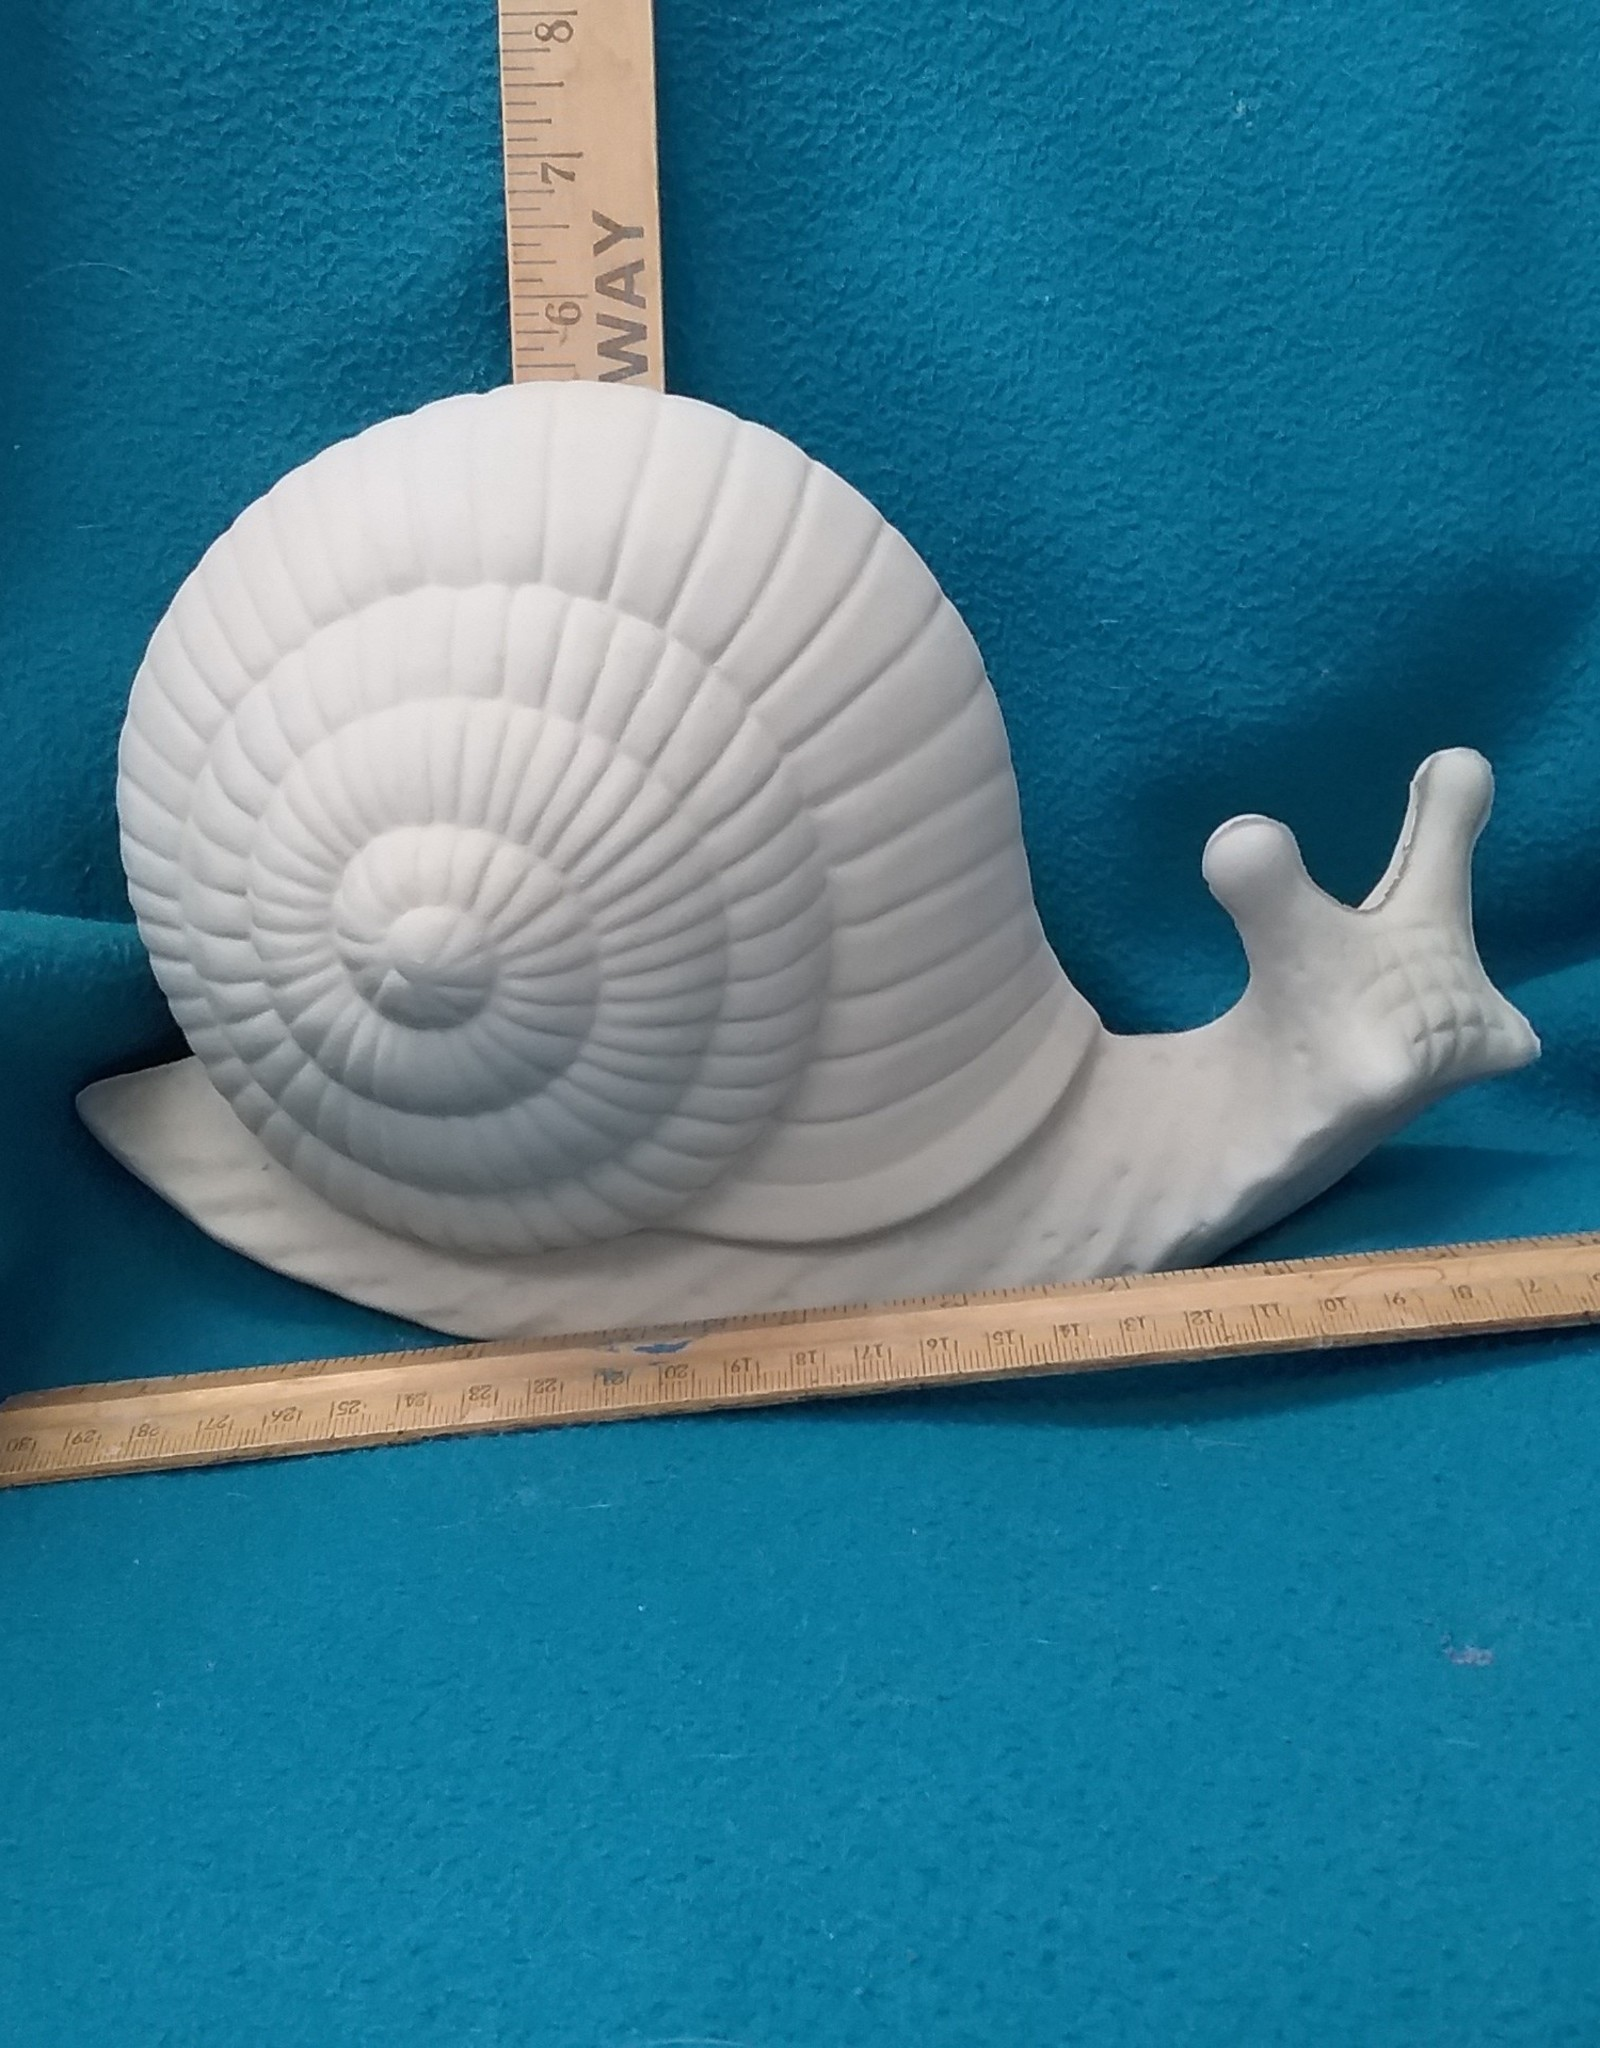 ART KIT Art Kit: Ceramic Snail